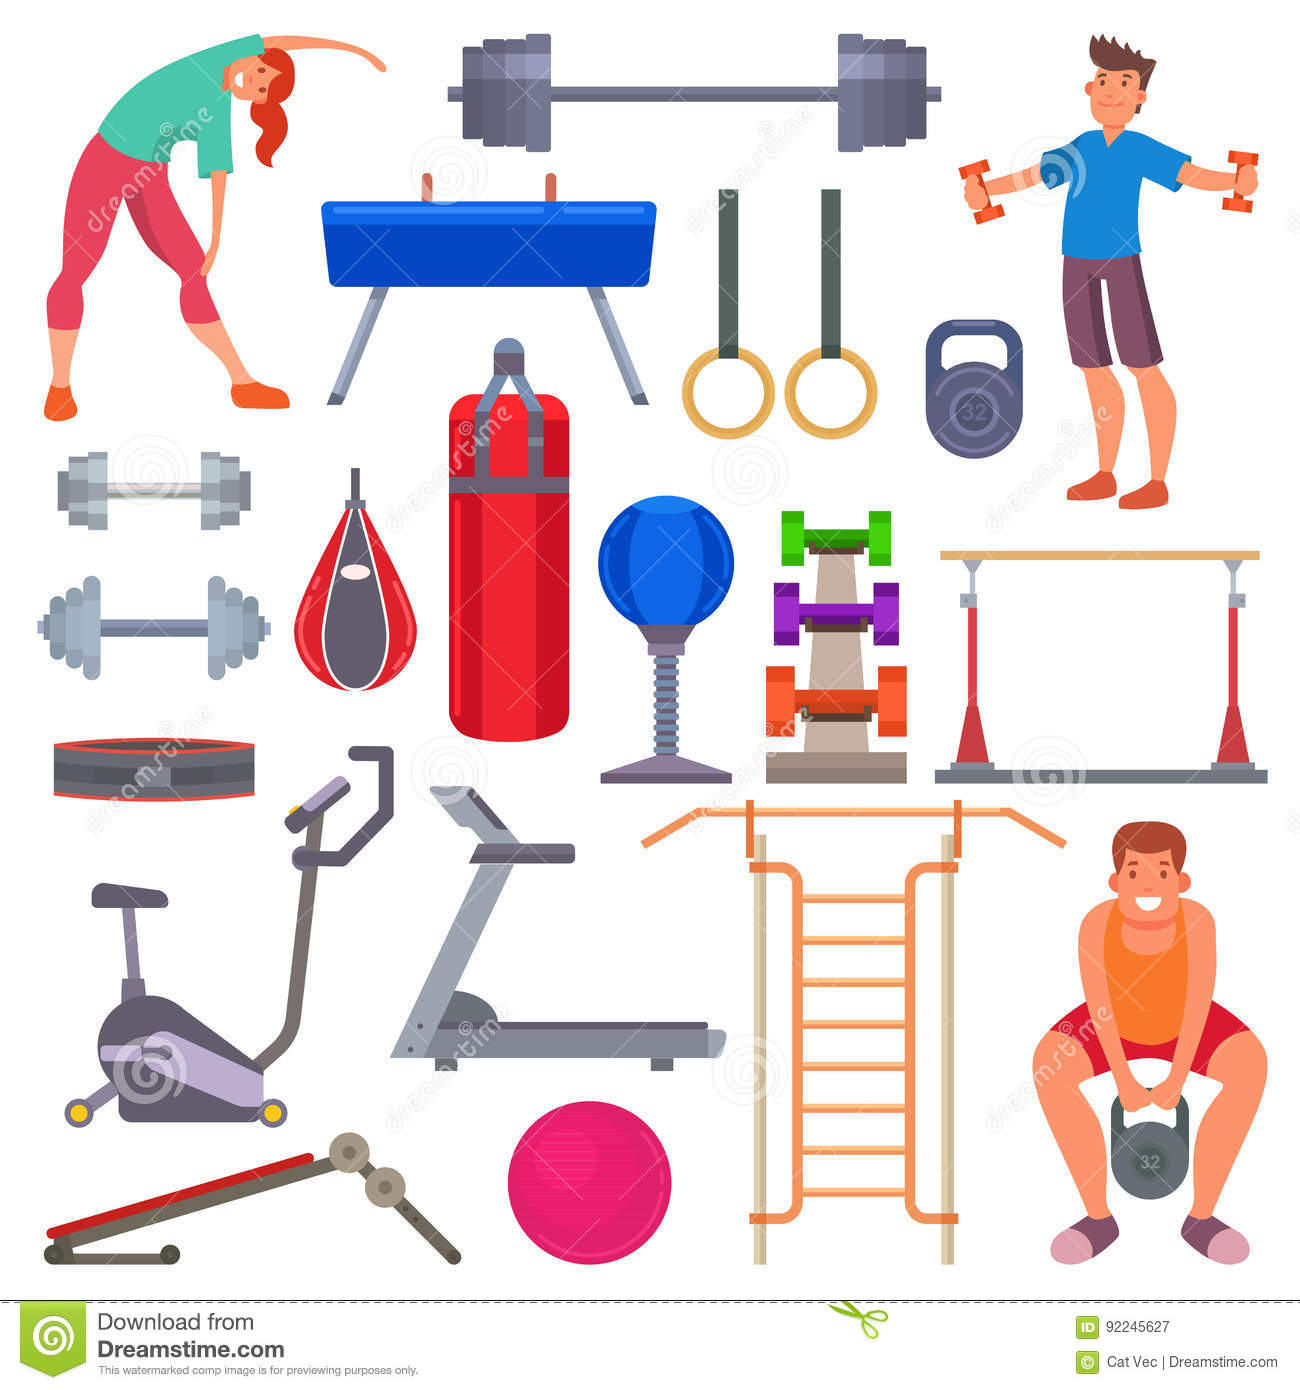 Download Sport Gym Equipment Flat Style Icons And Characters Healthy People Training Exercise Vector Illustration Stock